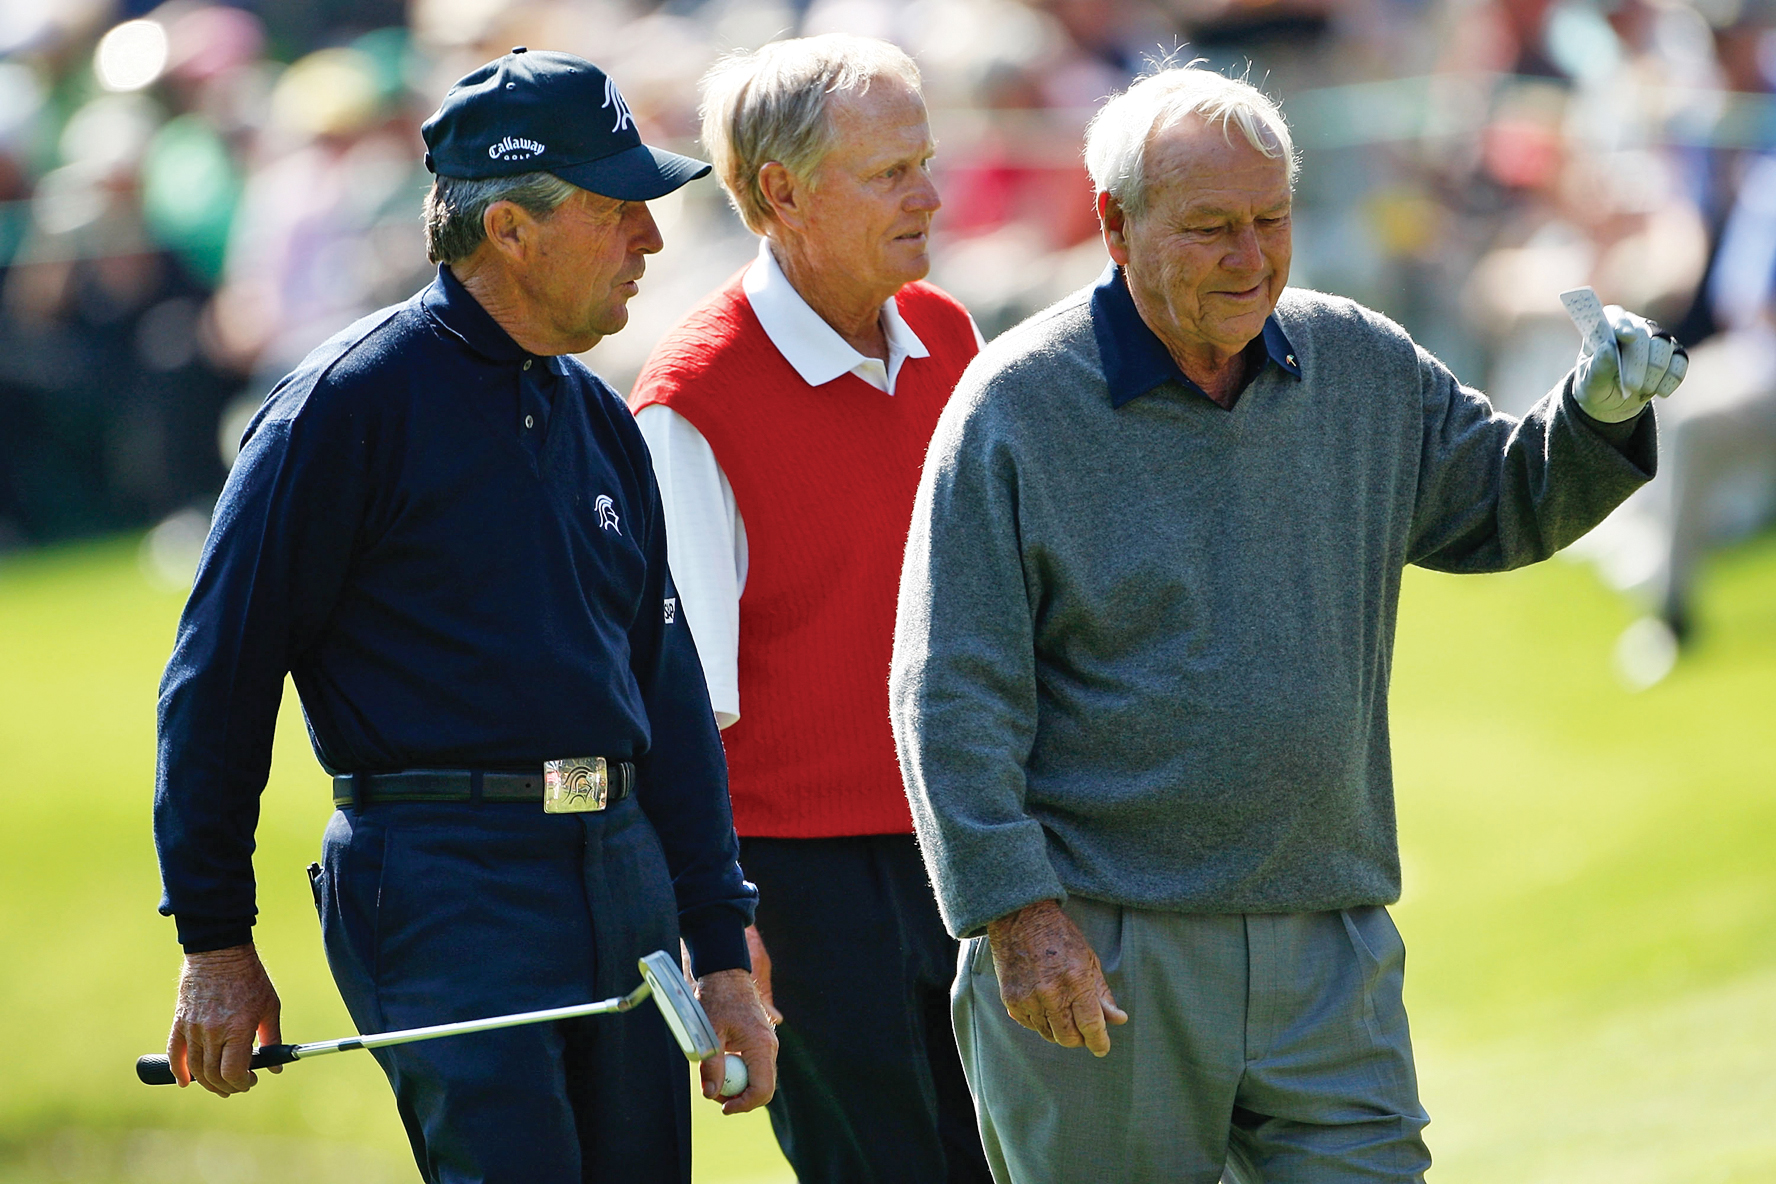 For the first time since 1954, the Masters will be played without Gary Player (left), Jack Nicklaus or Arnold Palmer in the starting field.